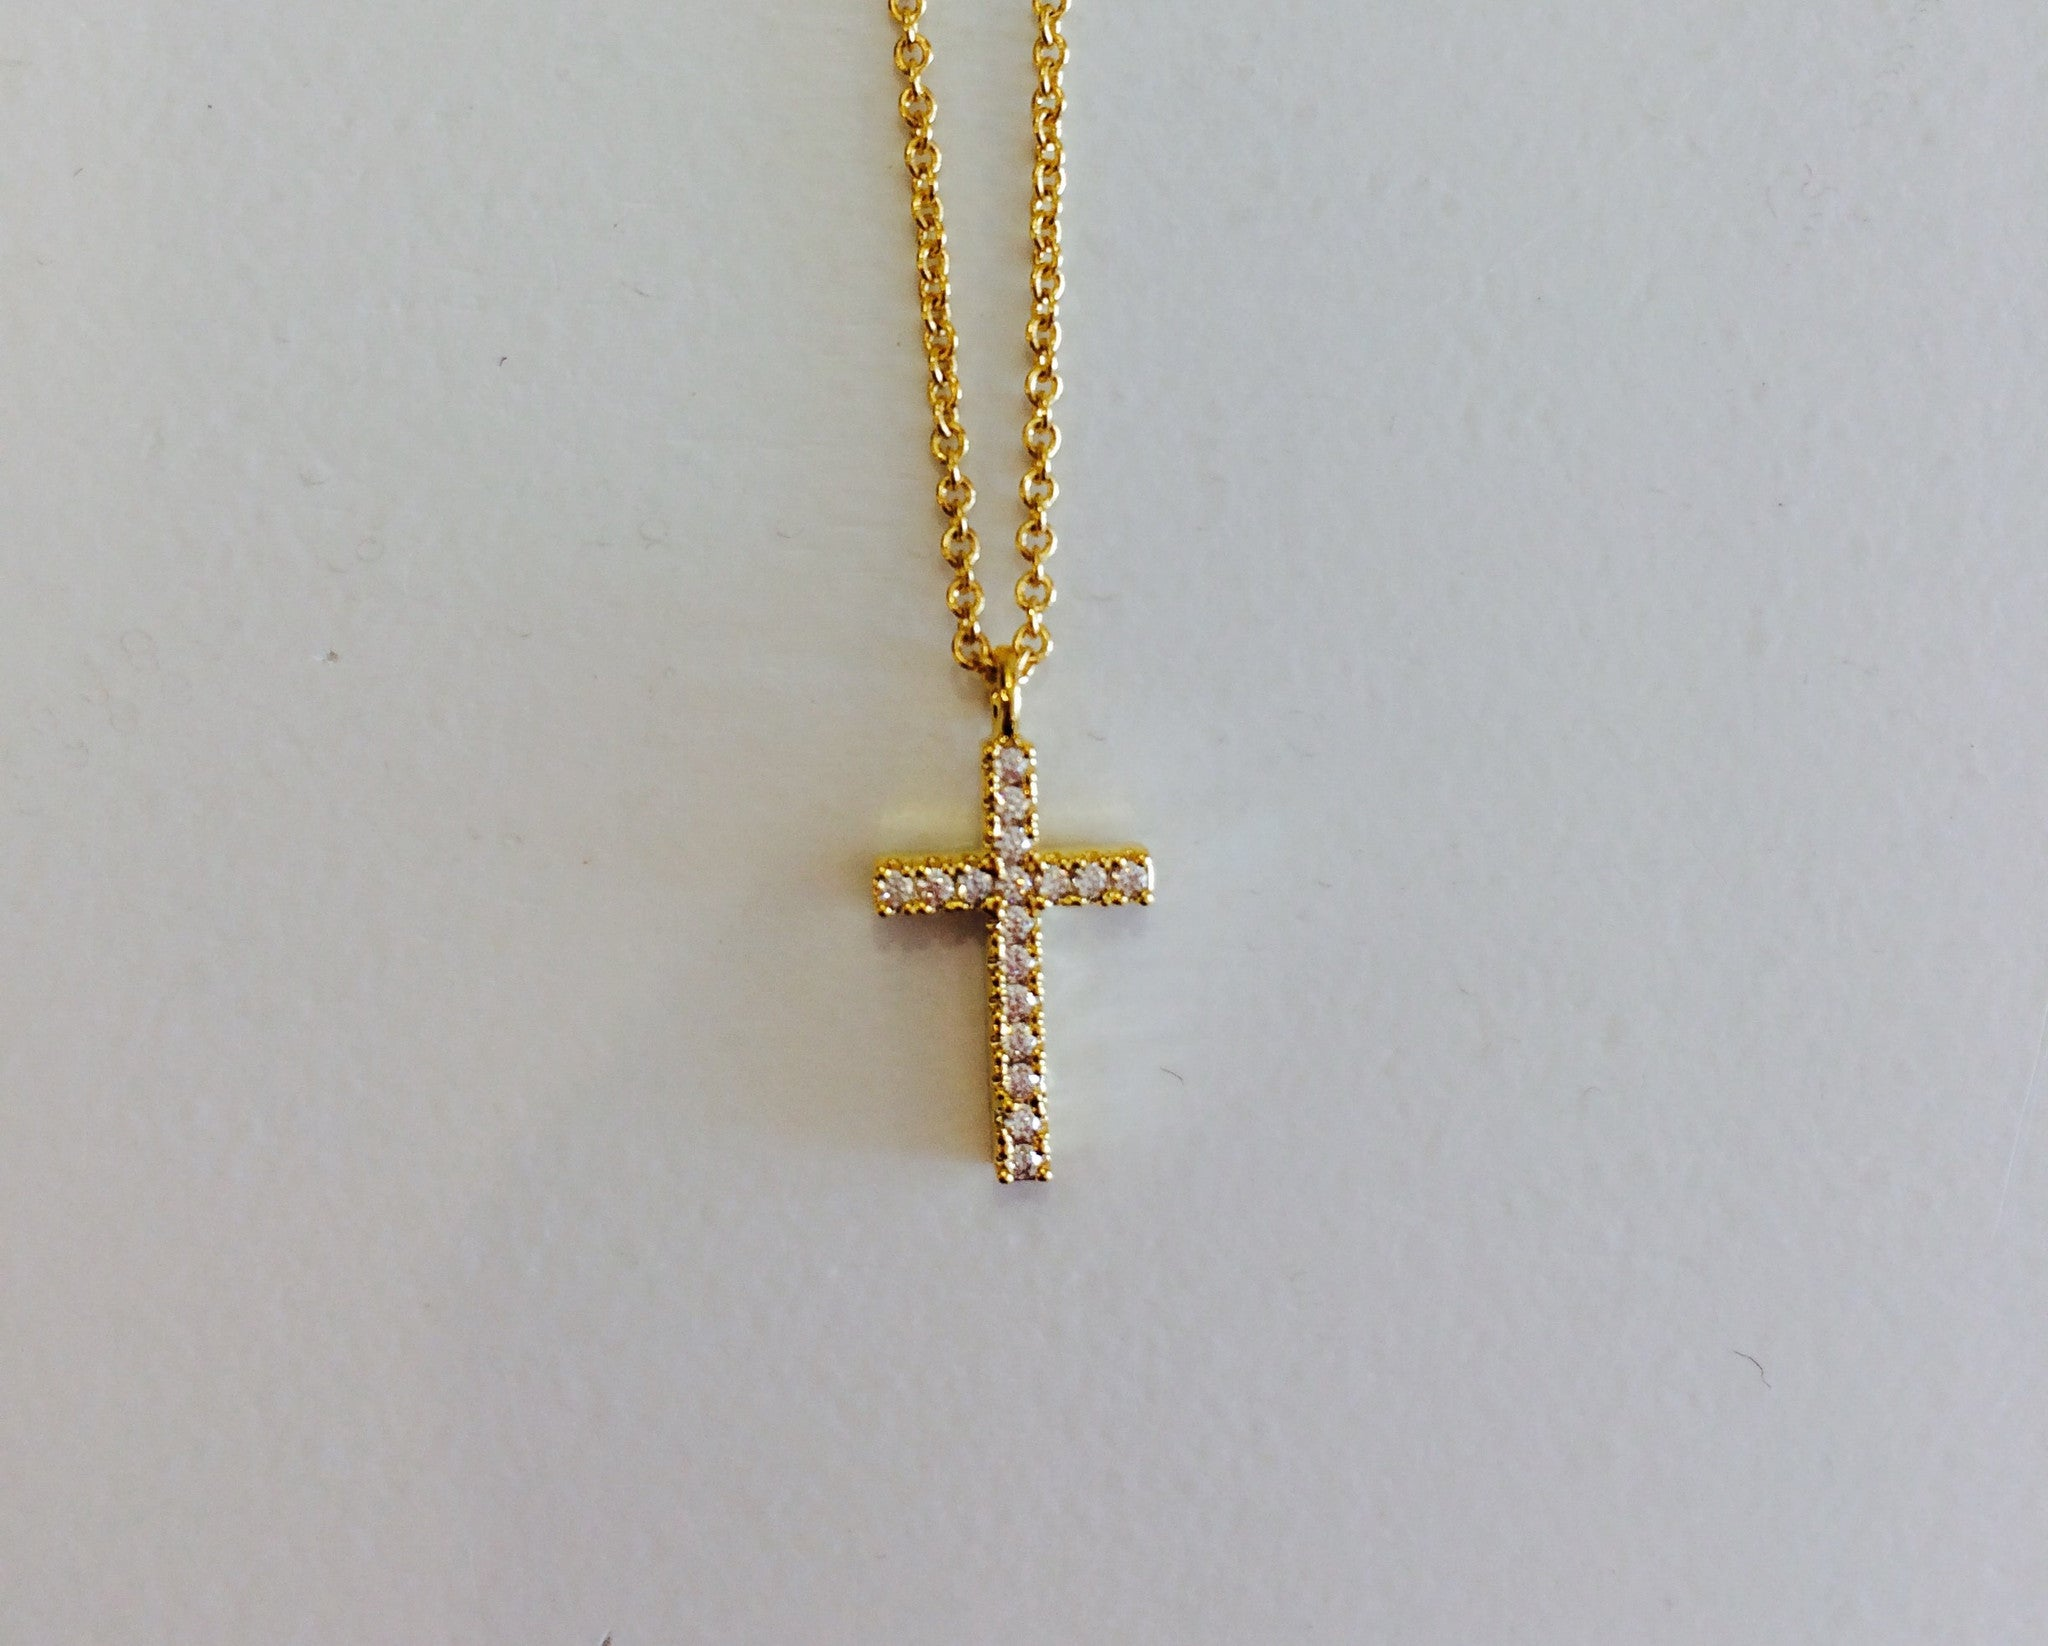 Crystal Paved Cross Necklace at Charm Boutique